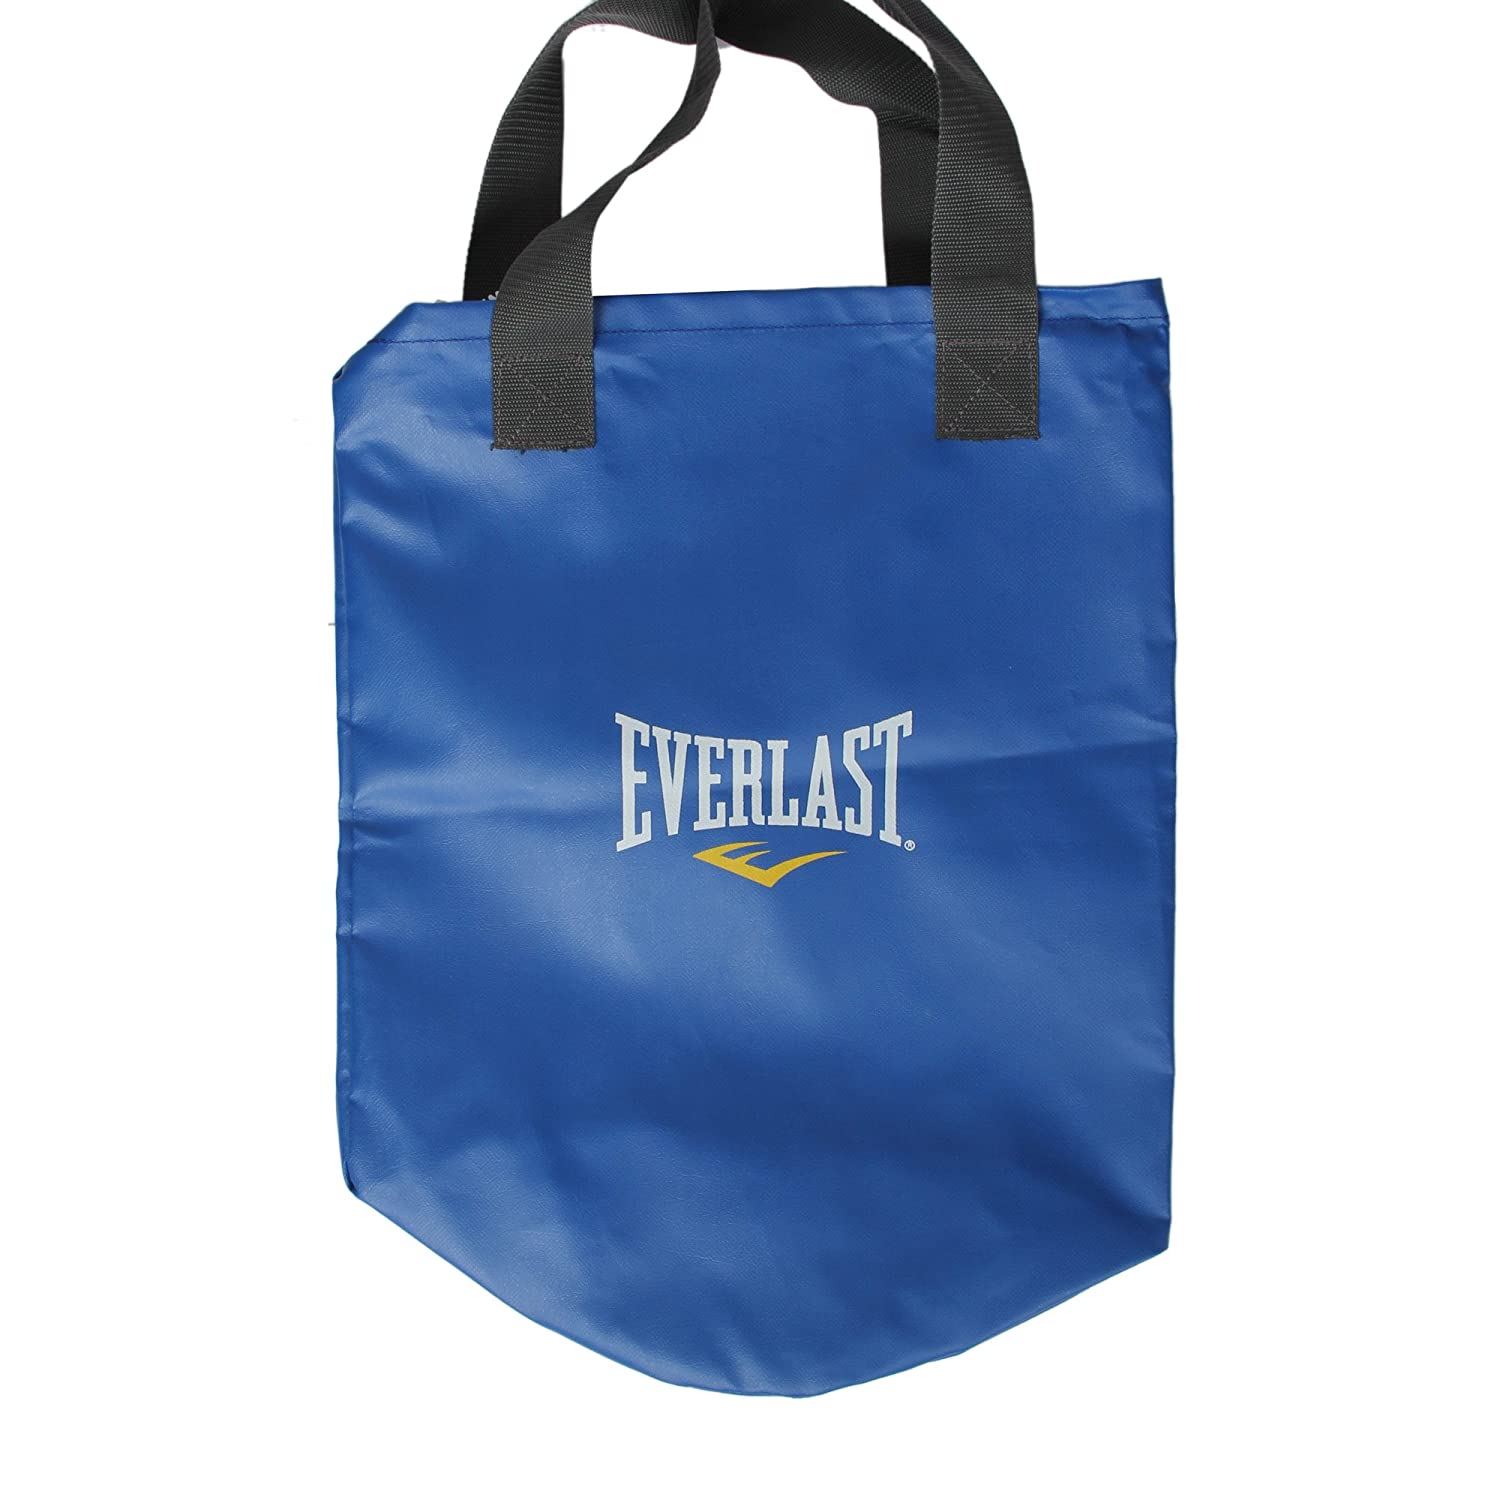 Everlast Unfilled Unfilled 25lb 25lb double-ended Nevatearヘビーバッグ、11.33 (ブルー) KG (ブルー) B00OB93B5M, 愛筆屋:ab9a8165 --- capela.dominiotemporario.com